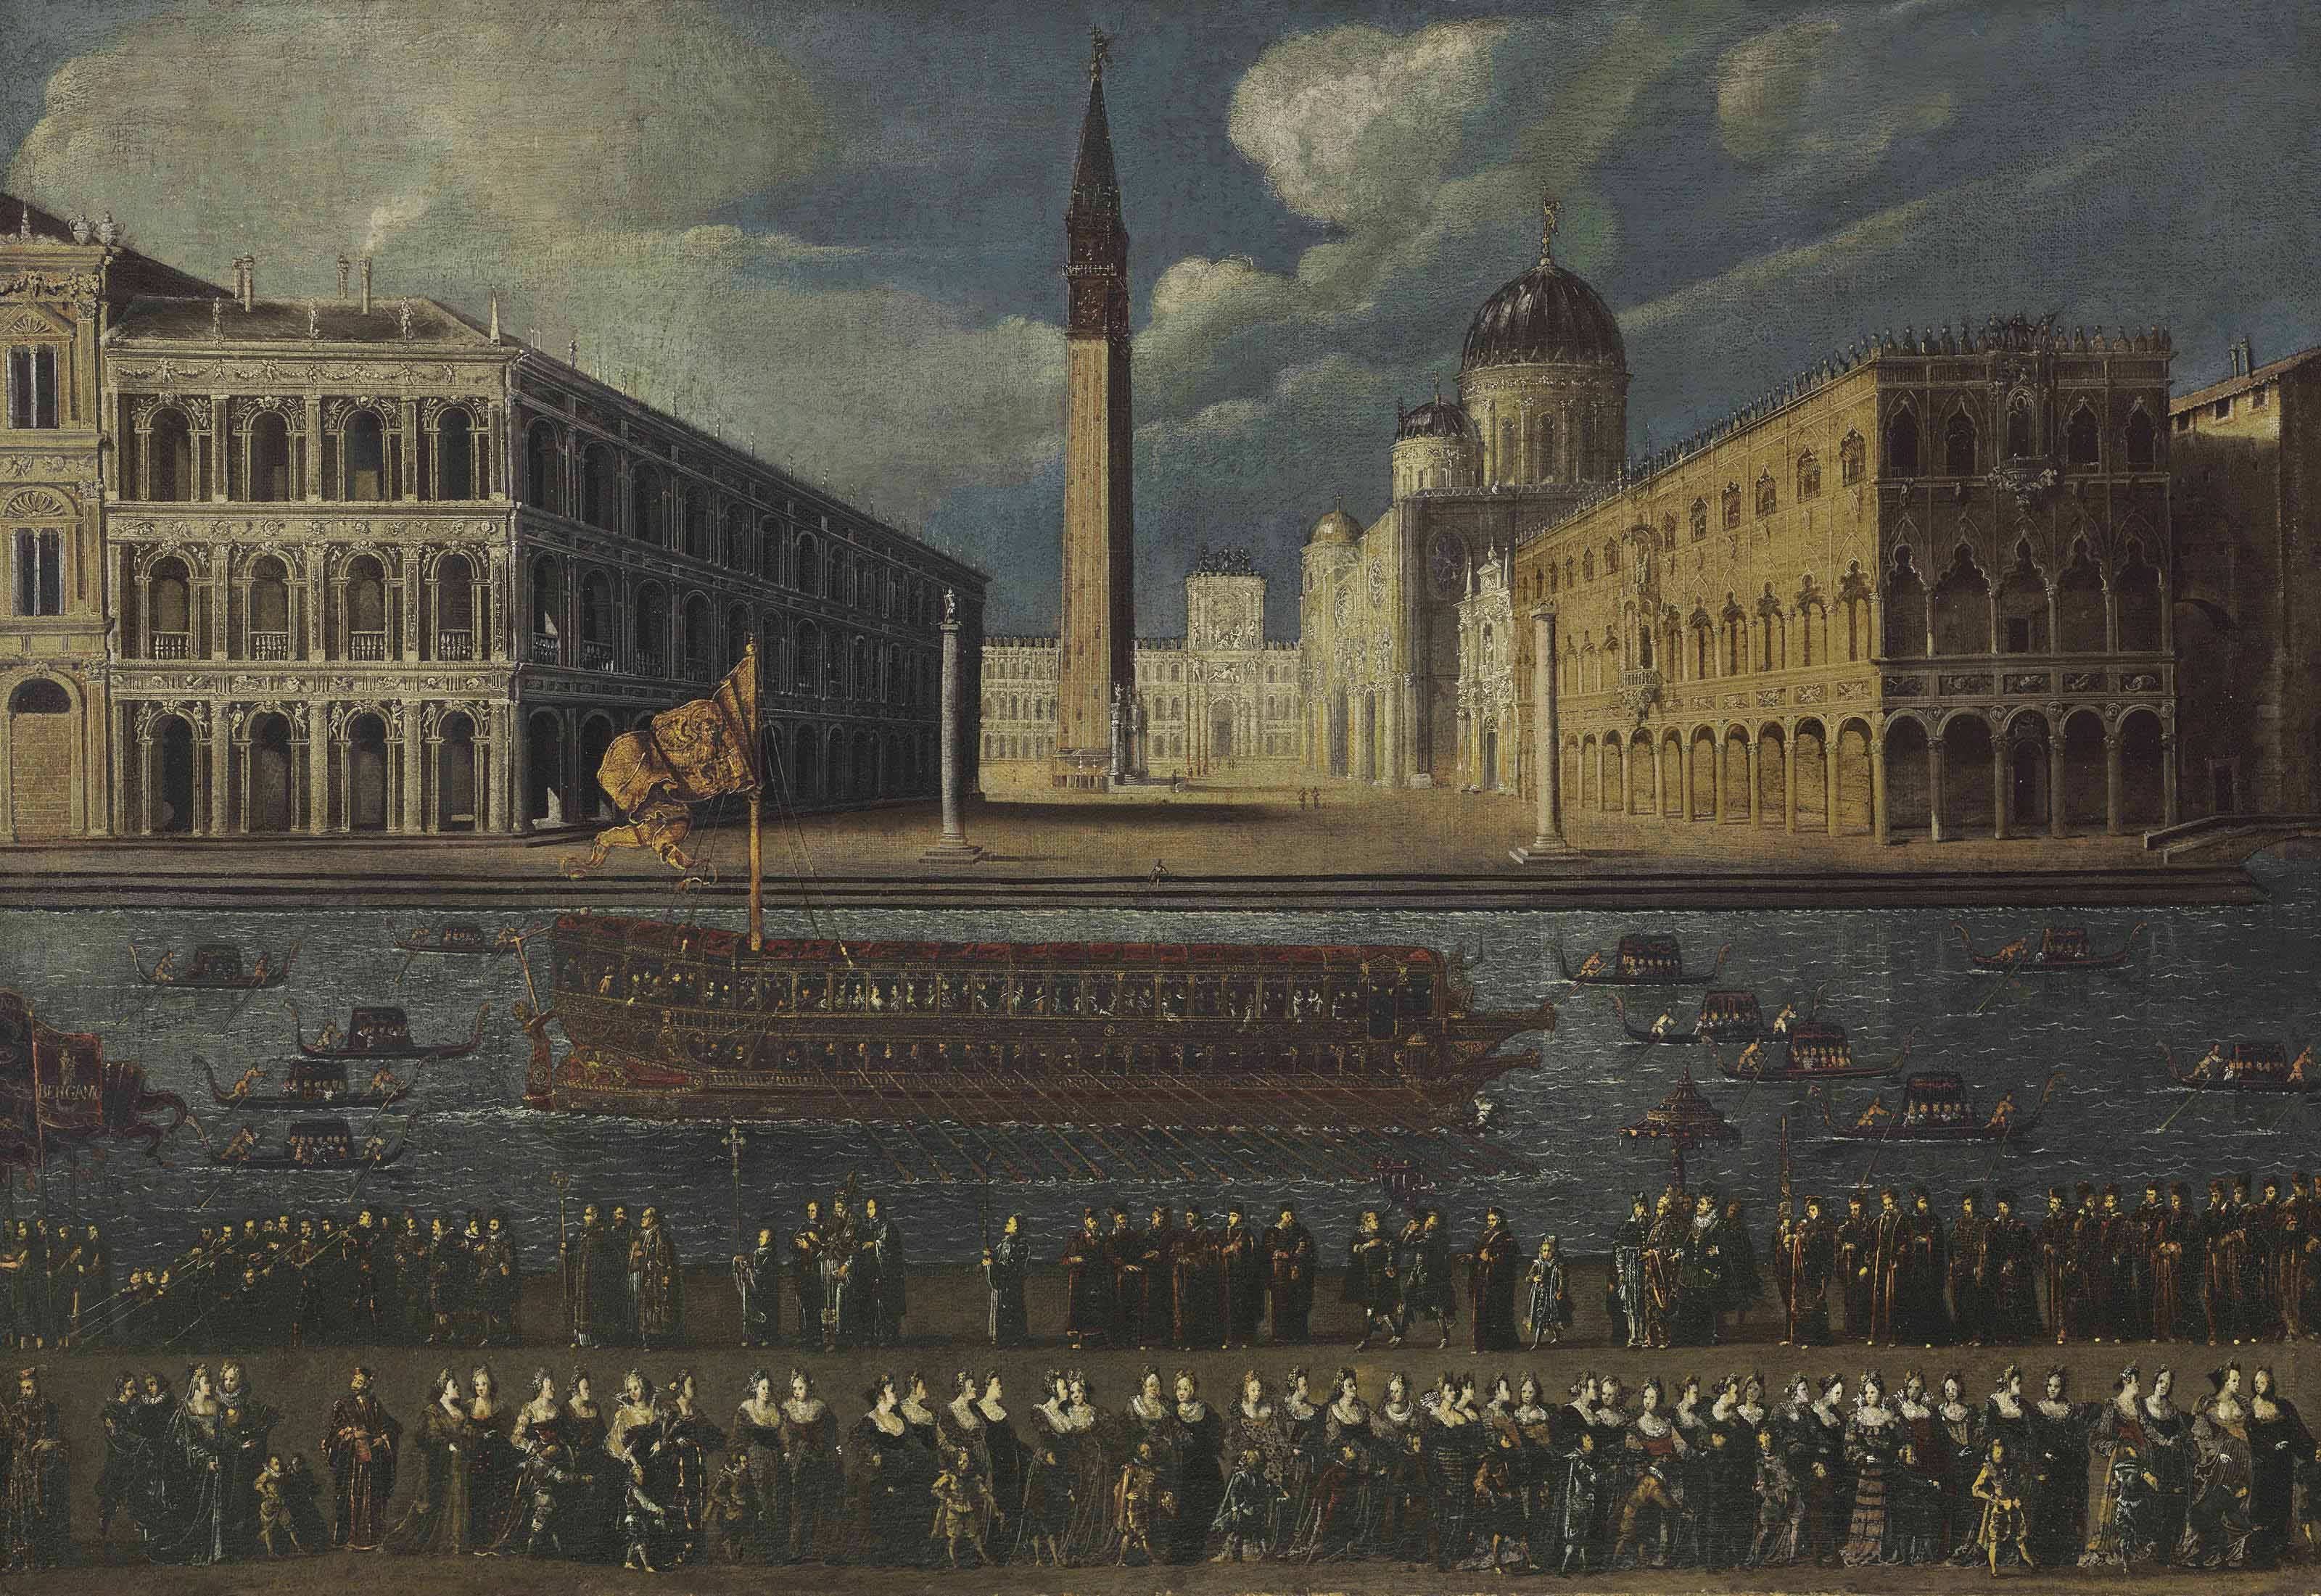 The Molo, Venice, from the Bacino di San Marco, with the departure of the Bucintoro for the Lido on Ascension Day